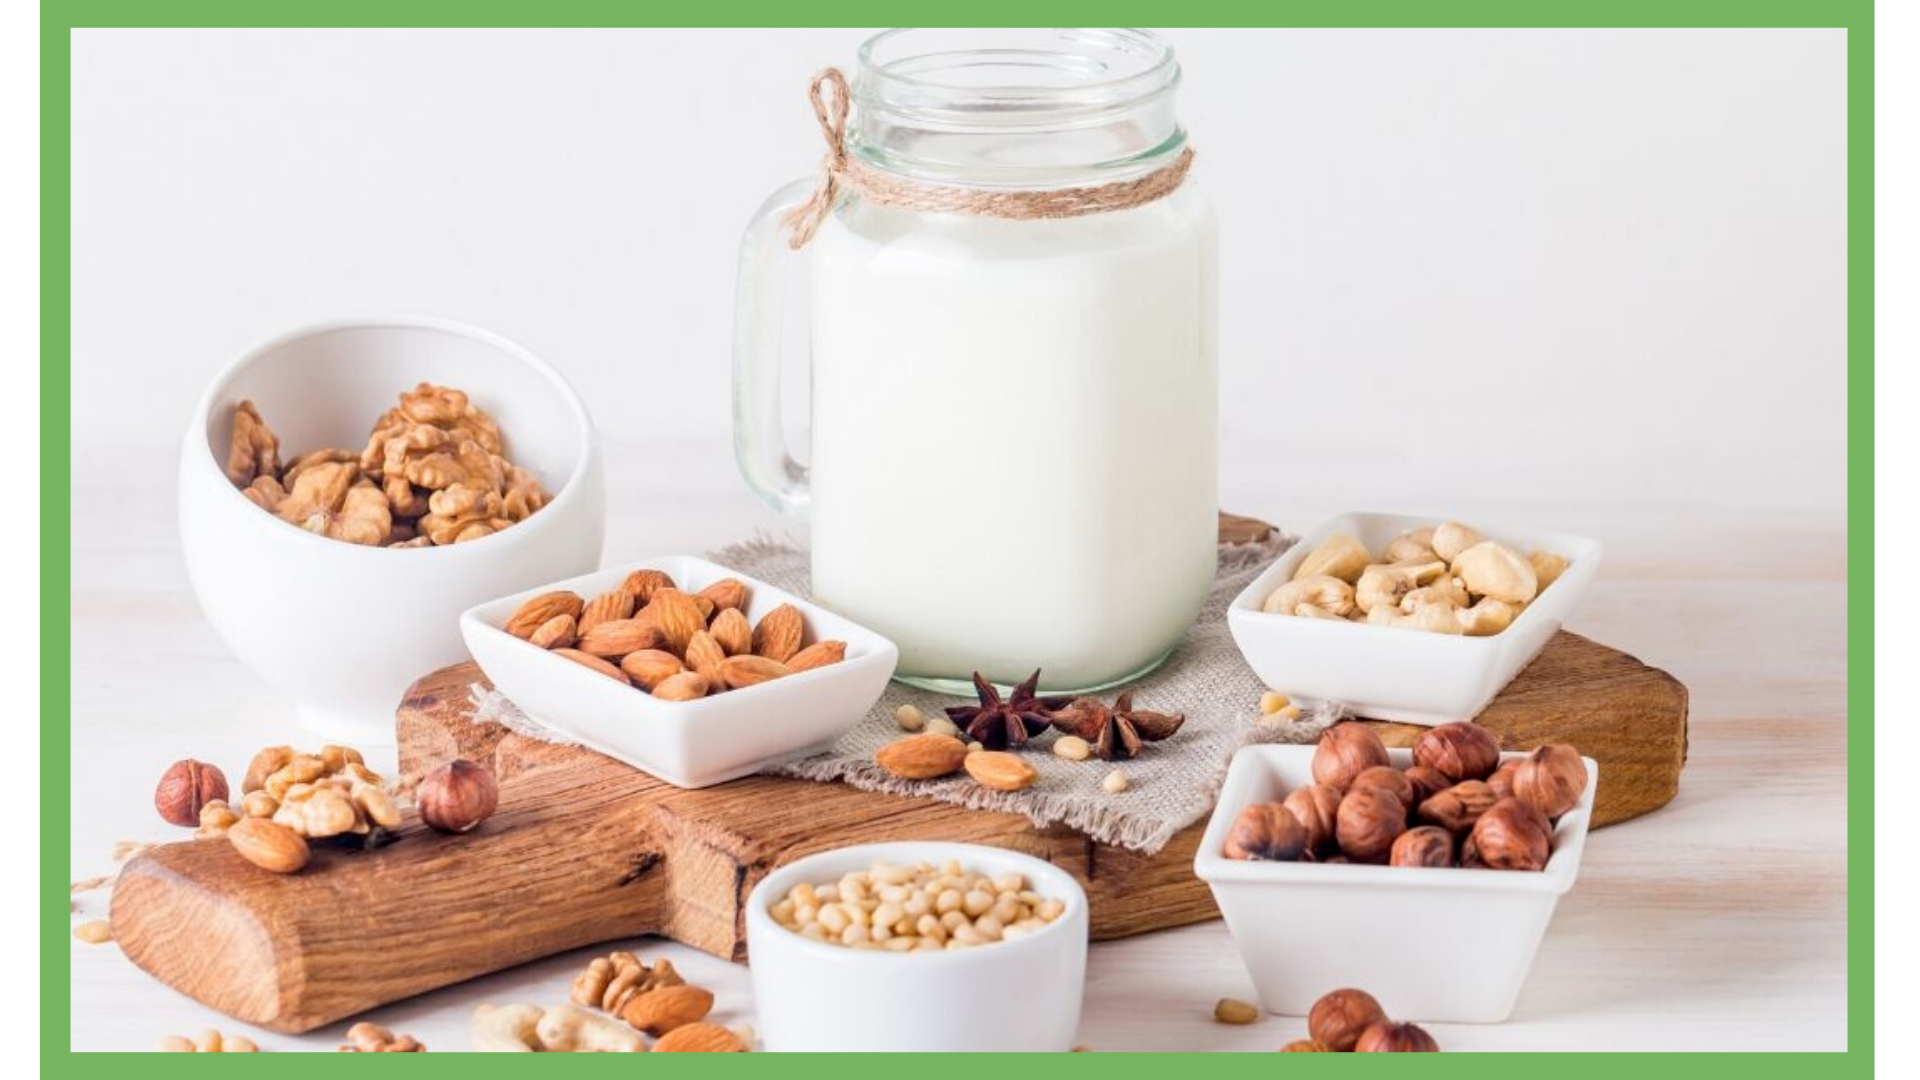 Jar of nutmilk and bowls of nuts